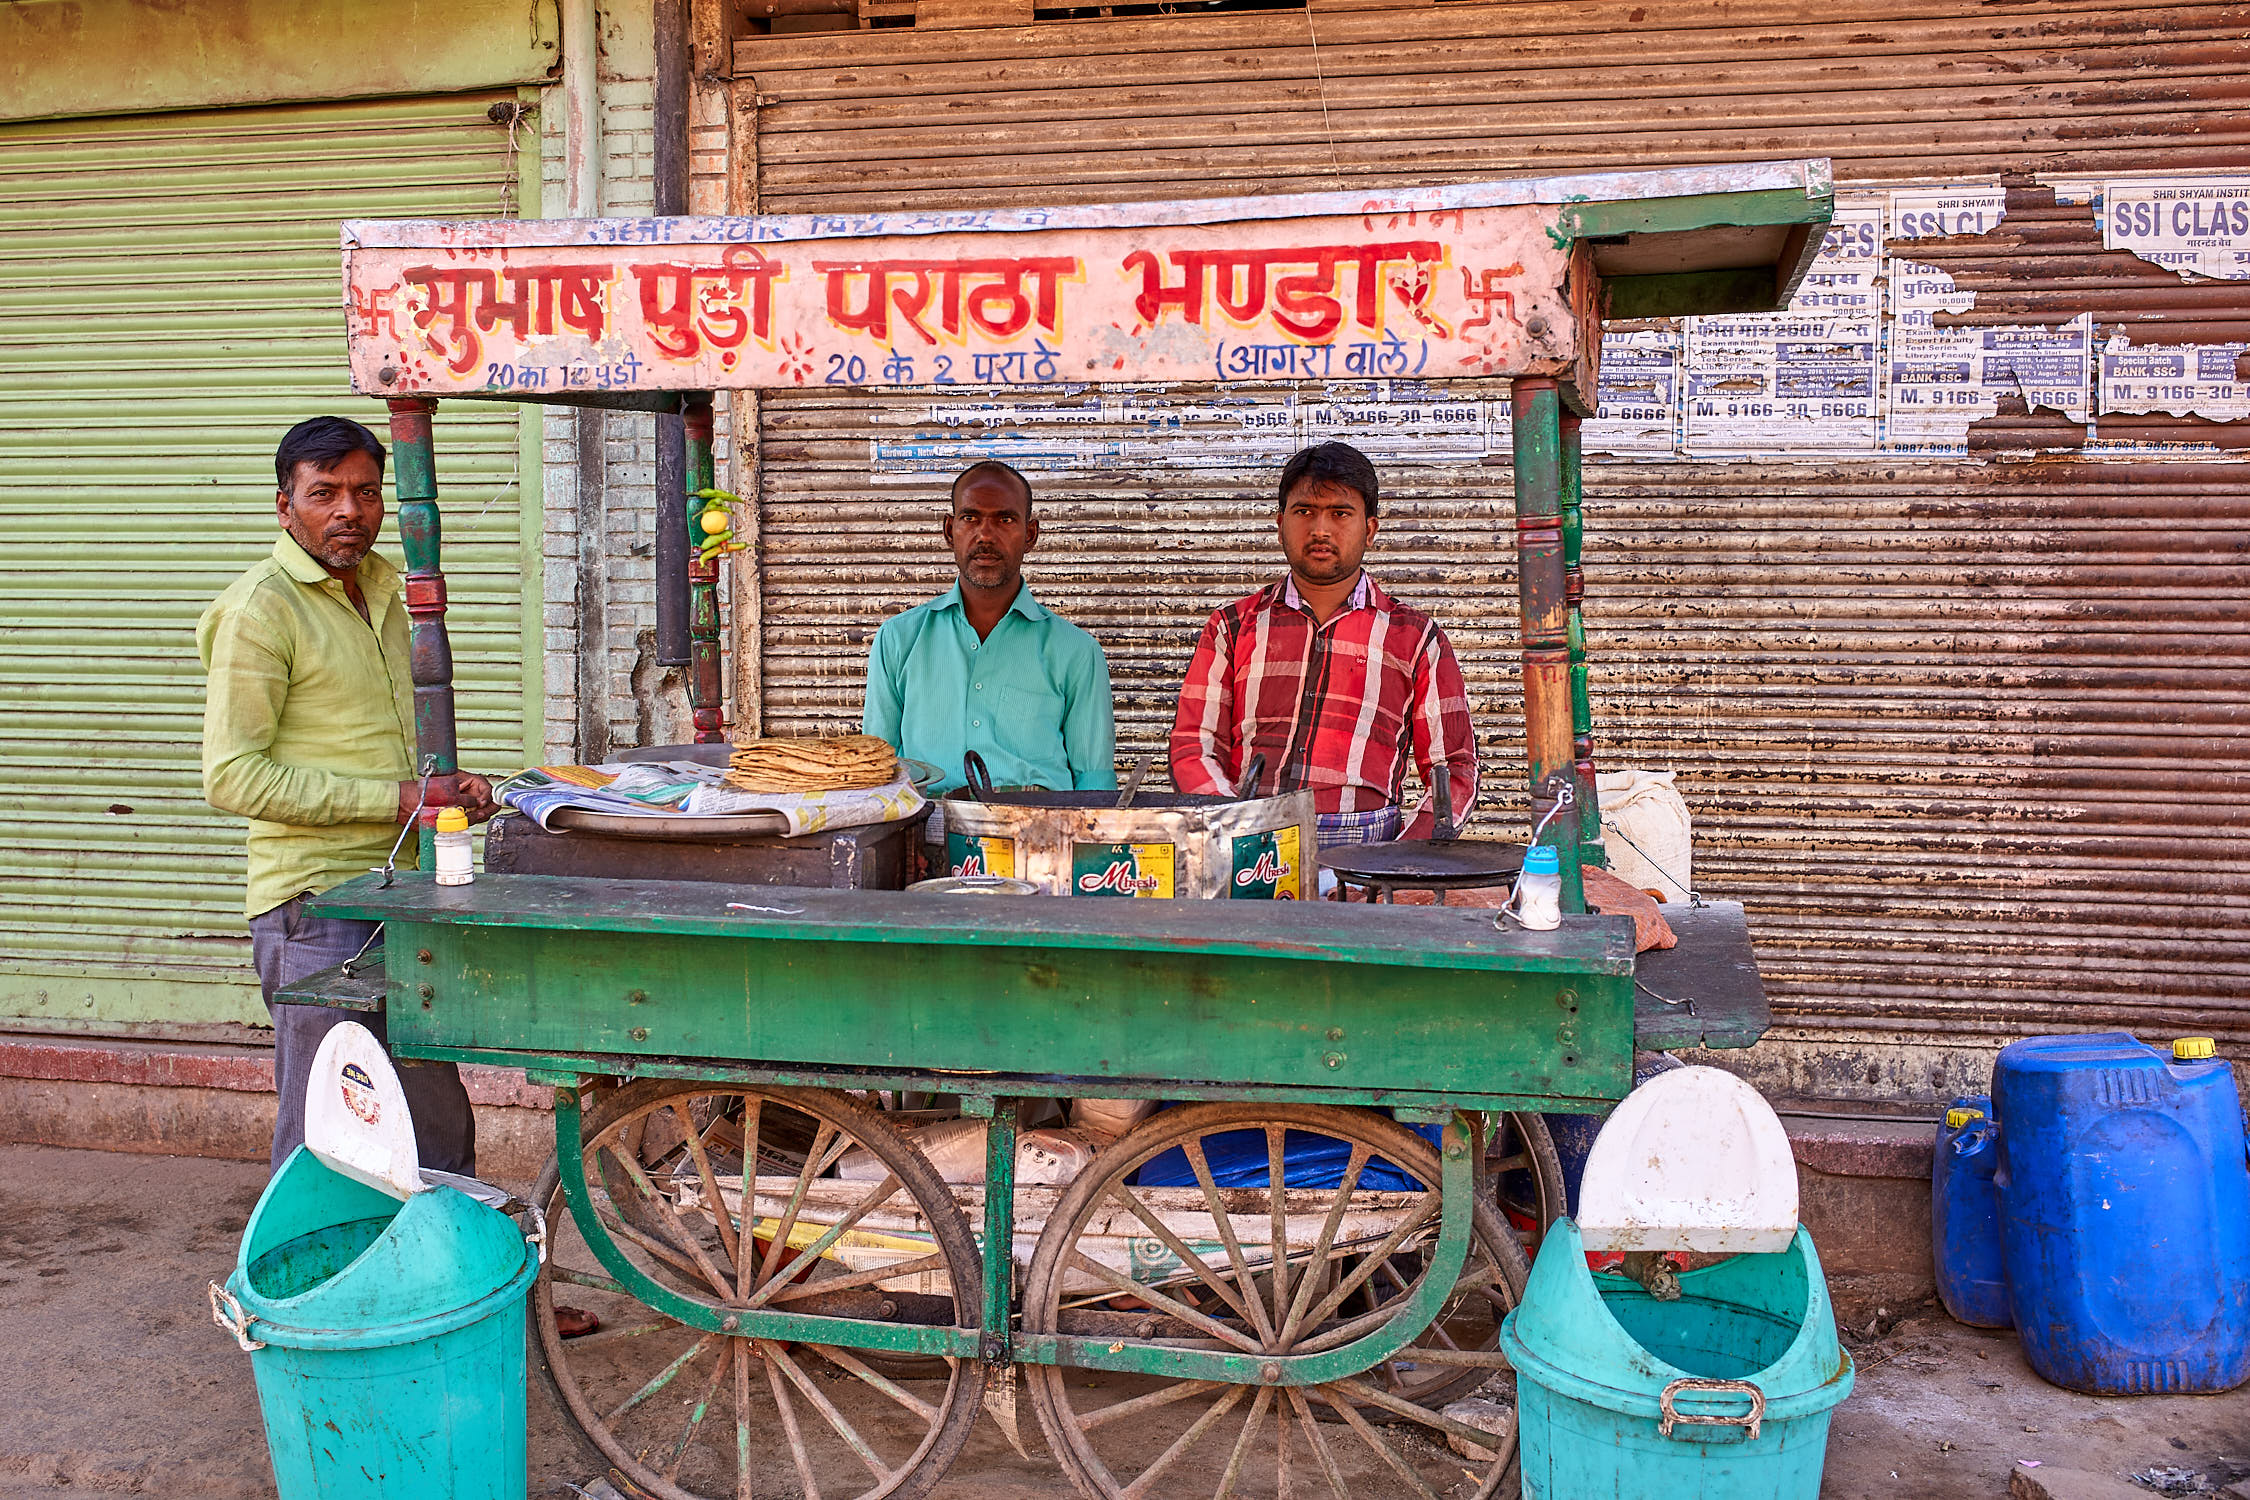 Street food vendor, Jaipur, India